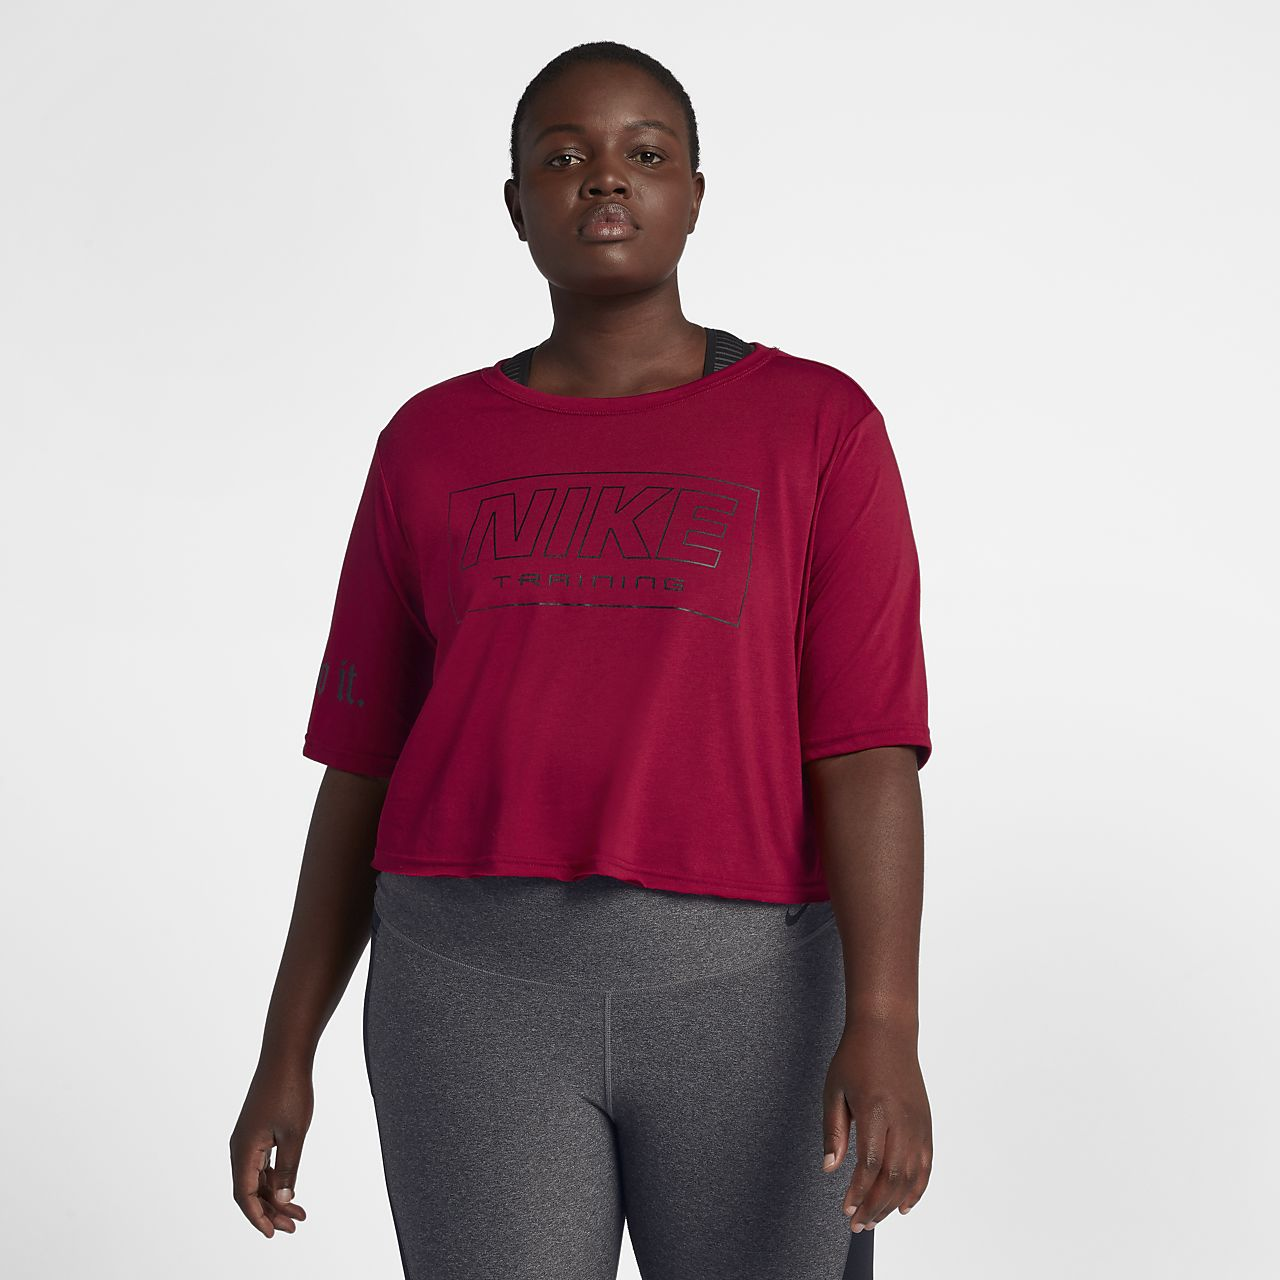 Nike Women's Short-Sleeve Training Top (Plus Size)